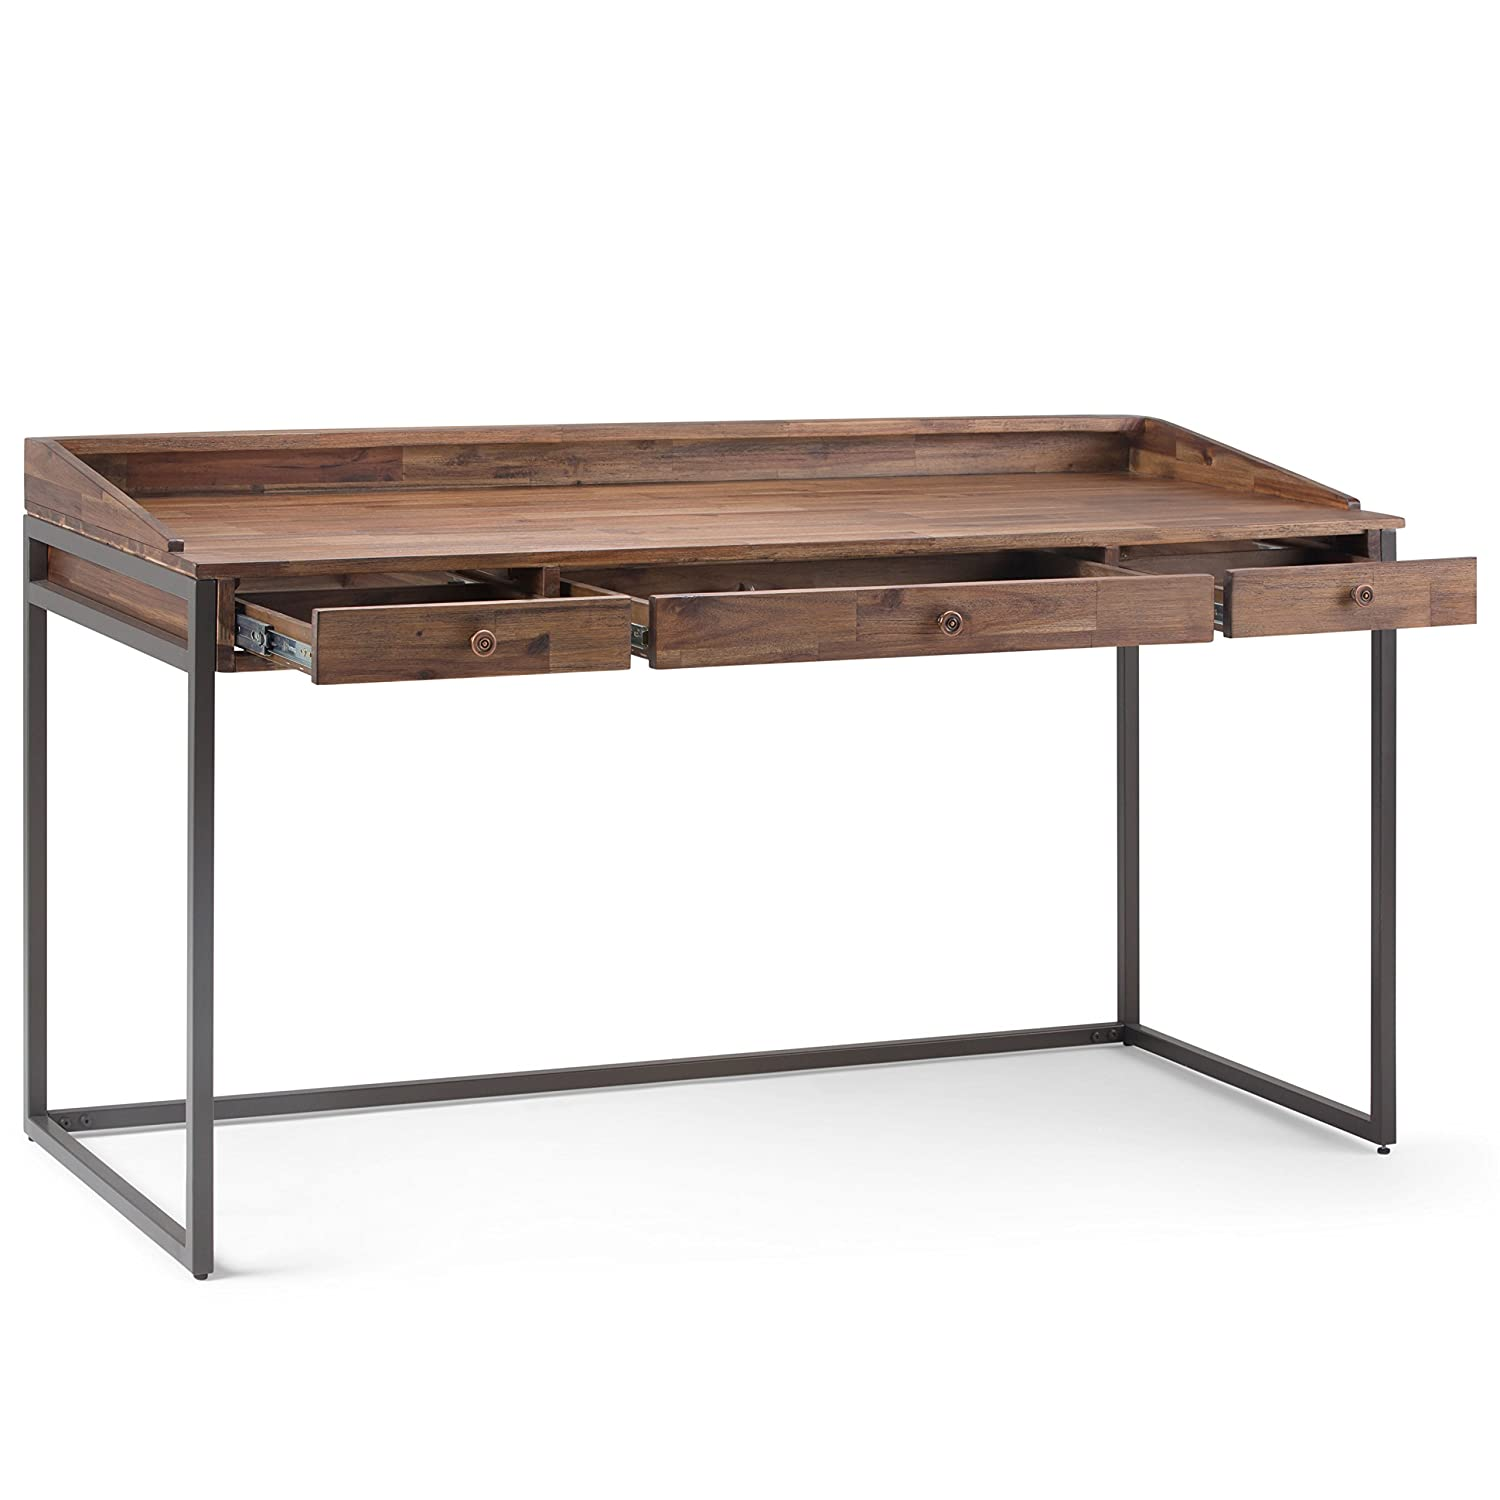 Amazon com simpli home axcrst 14 ralston solid acacia wood and metal modern industrial writing office desk in rustic natural aged brown kitchen dining